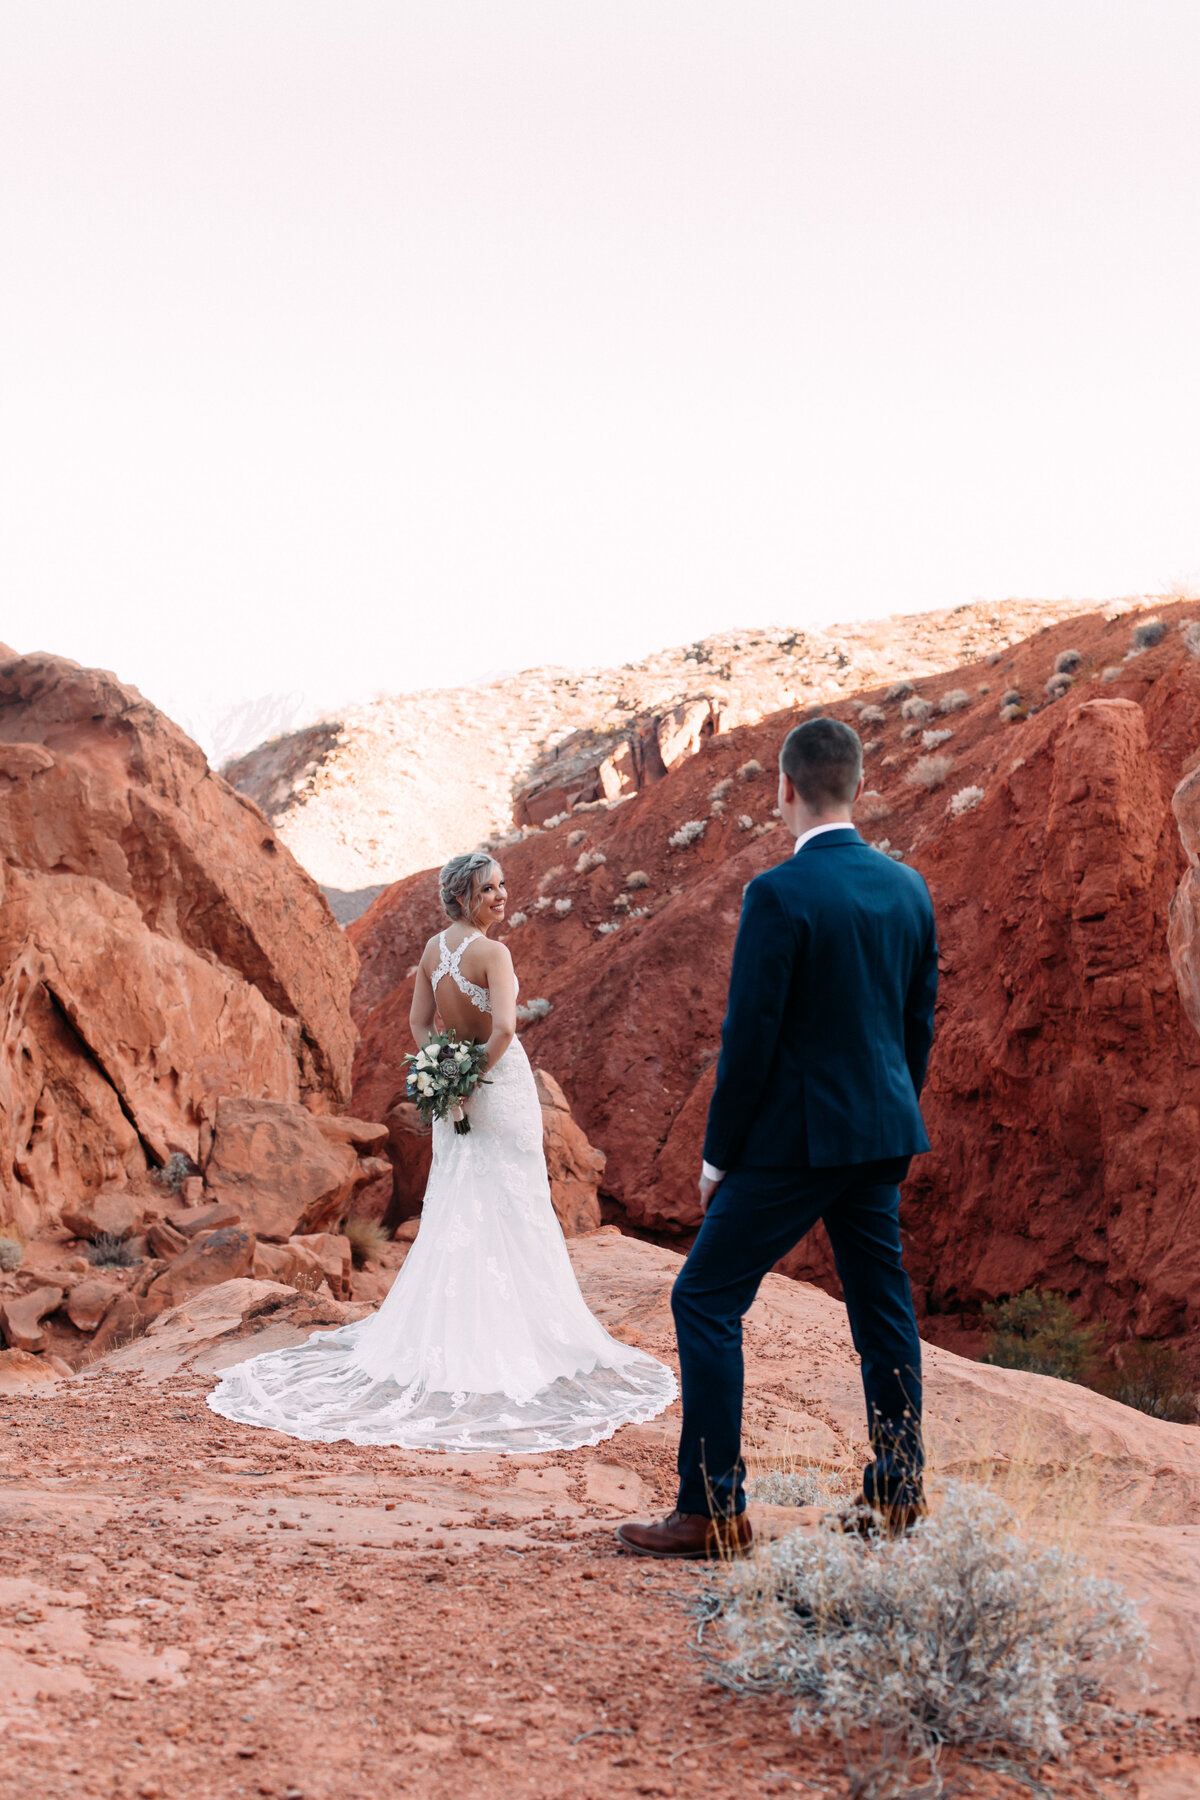 Heather+Ivan|AshlynSavannahPhoto|ValleyofFireElopement-29